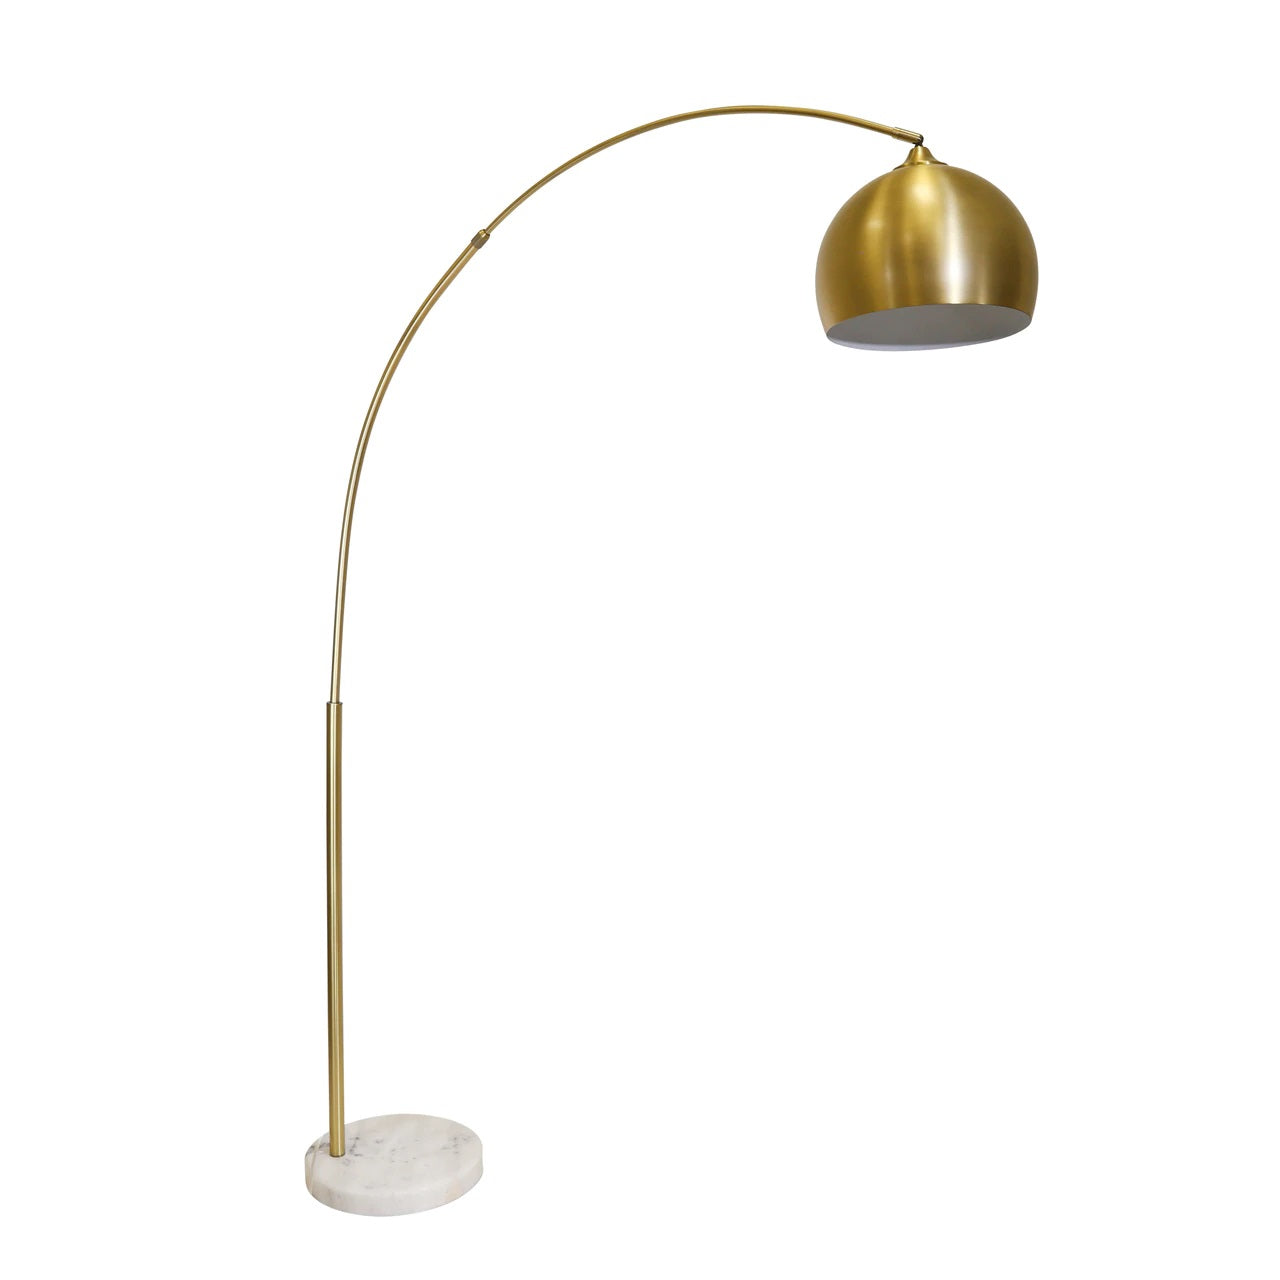 Gold Arch Floor Lamp 77""